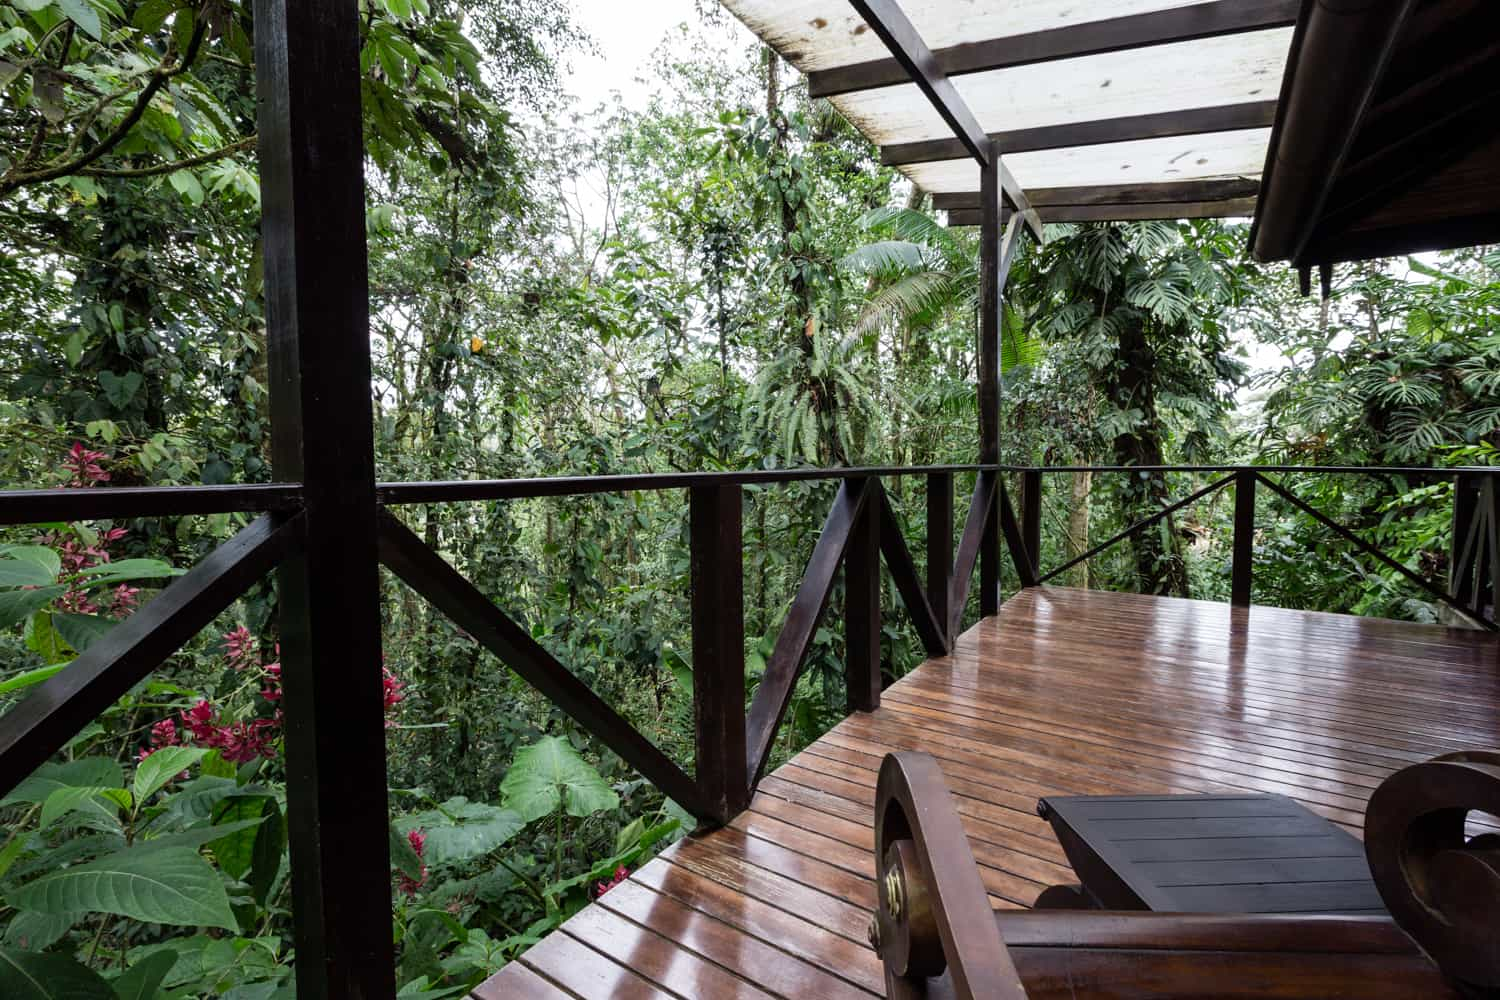 Site at Rio Celeste Hideaway Hotel for private rainforest wedding.